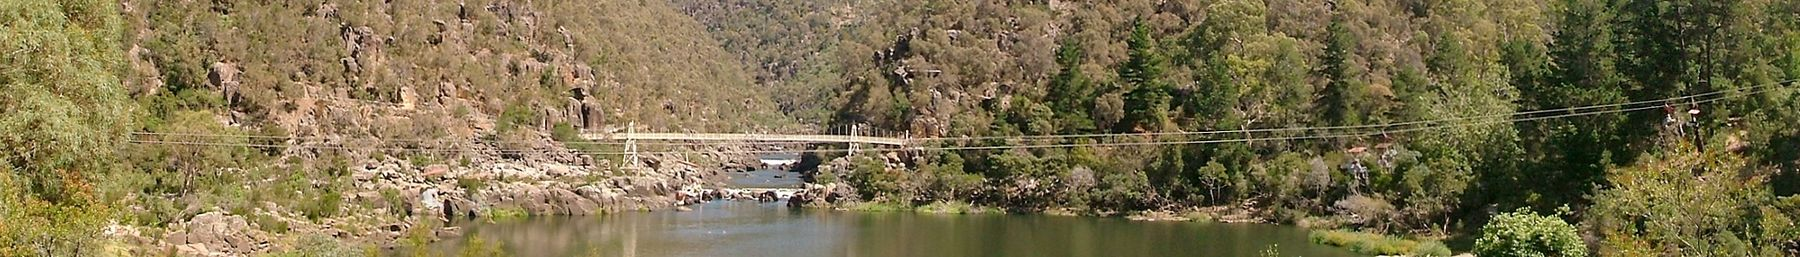 Launceston banner Cataract Gorge.jpg